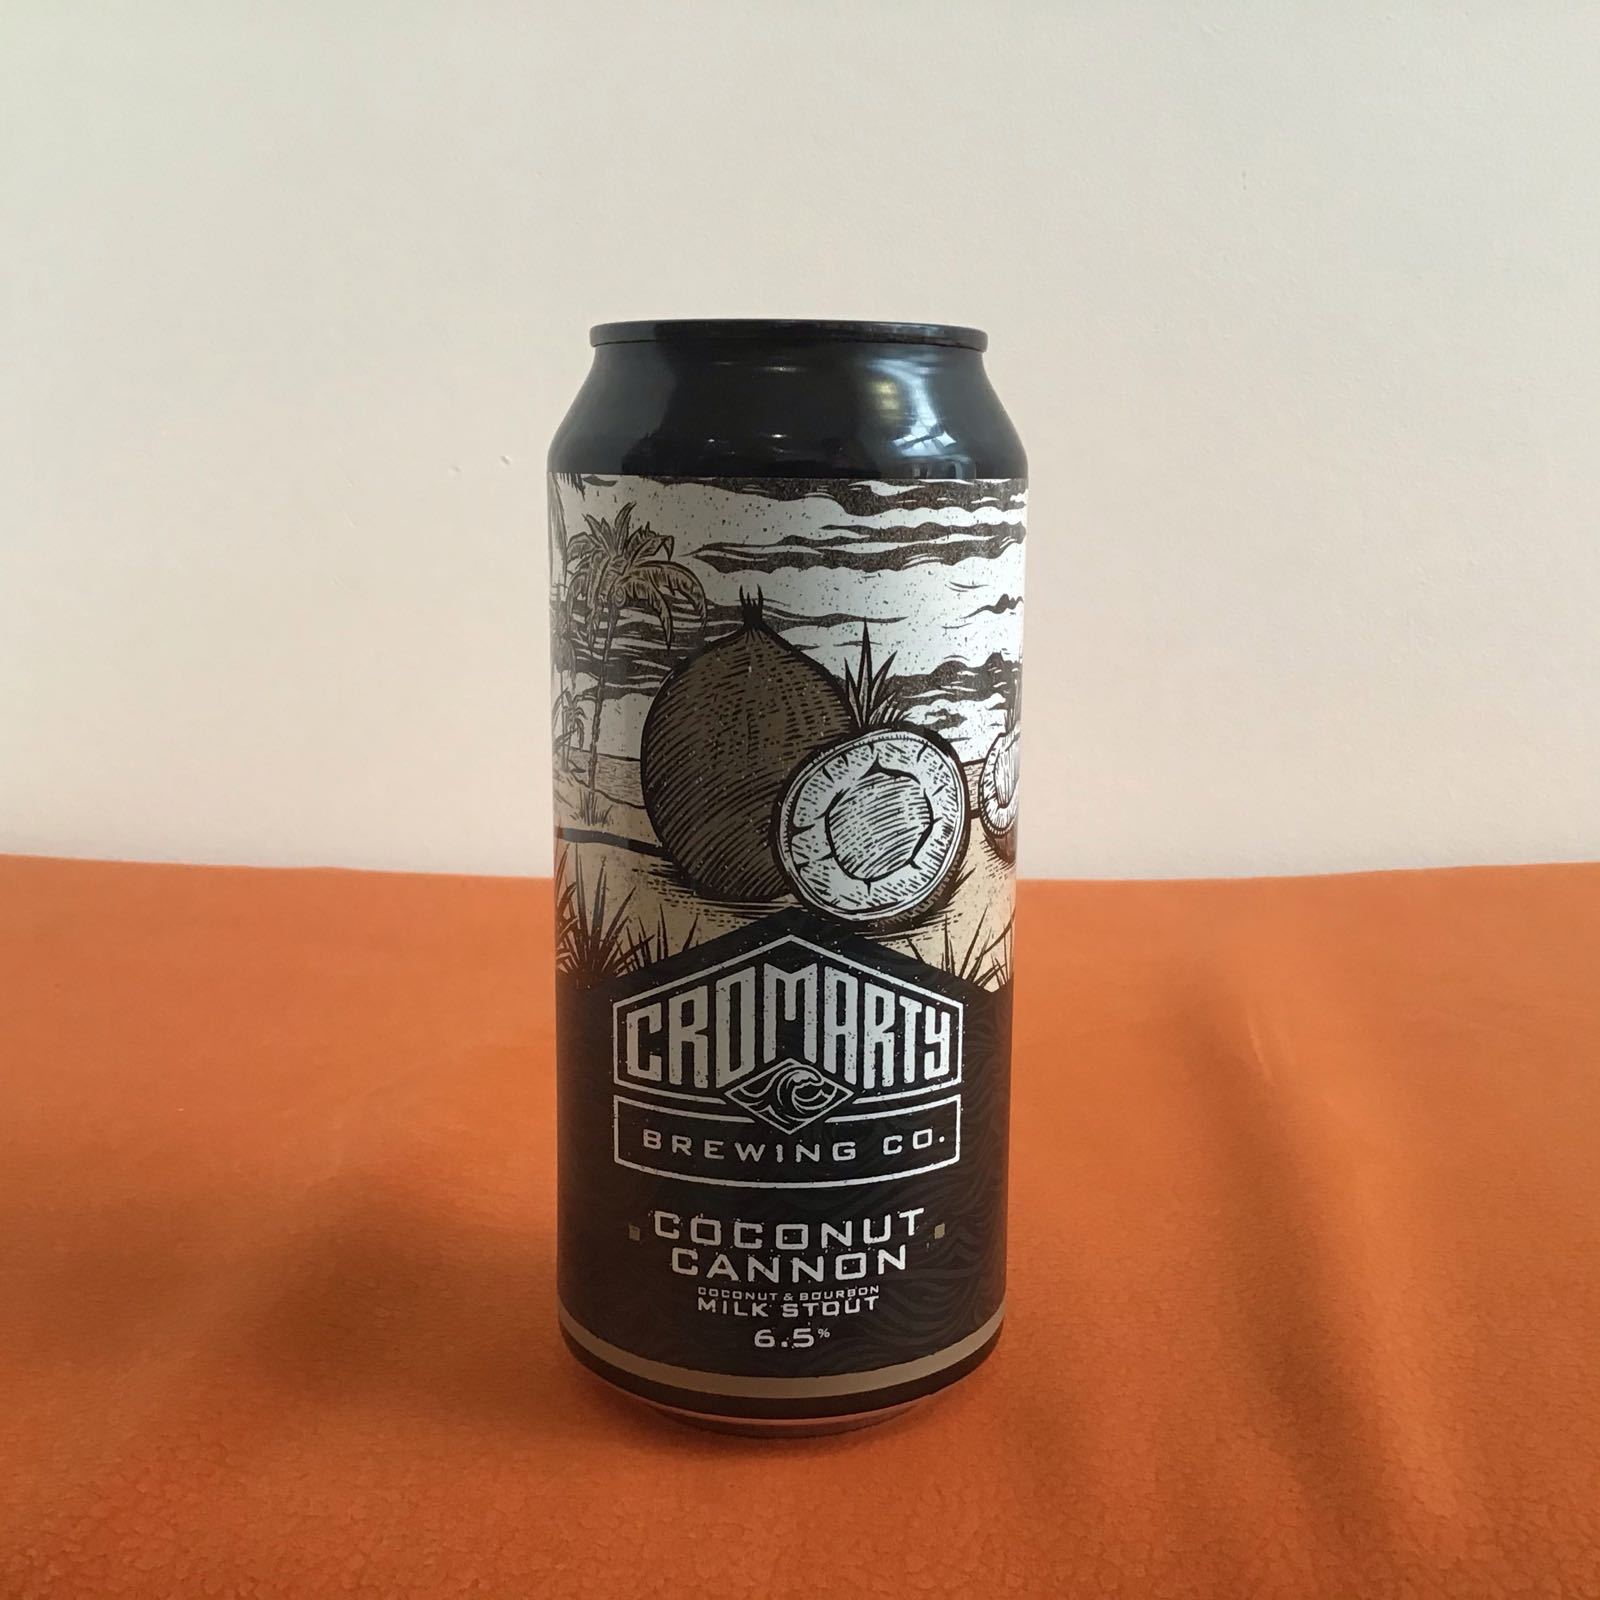 Cromarty Brewing Co: Coconut Cannon